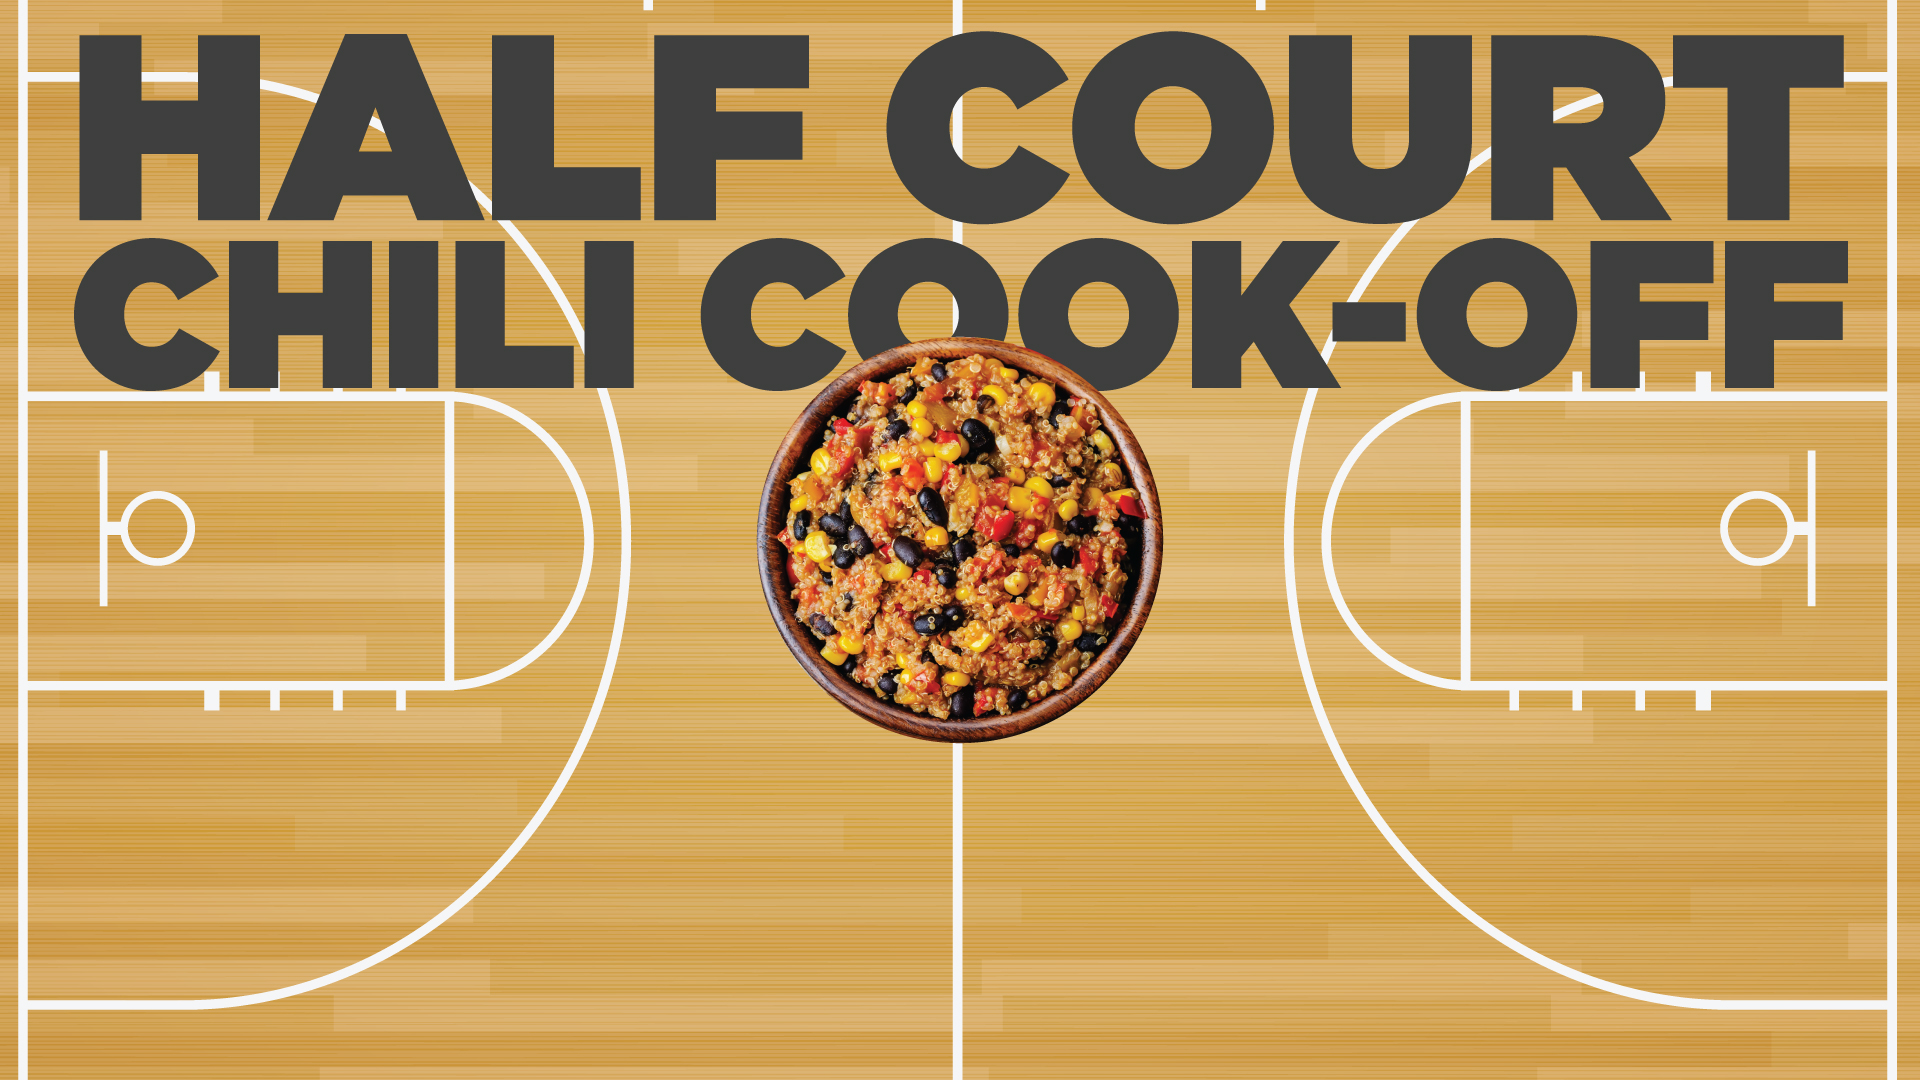 Half Court Chili Cook-Off